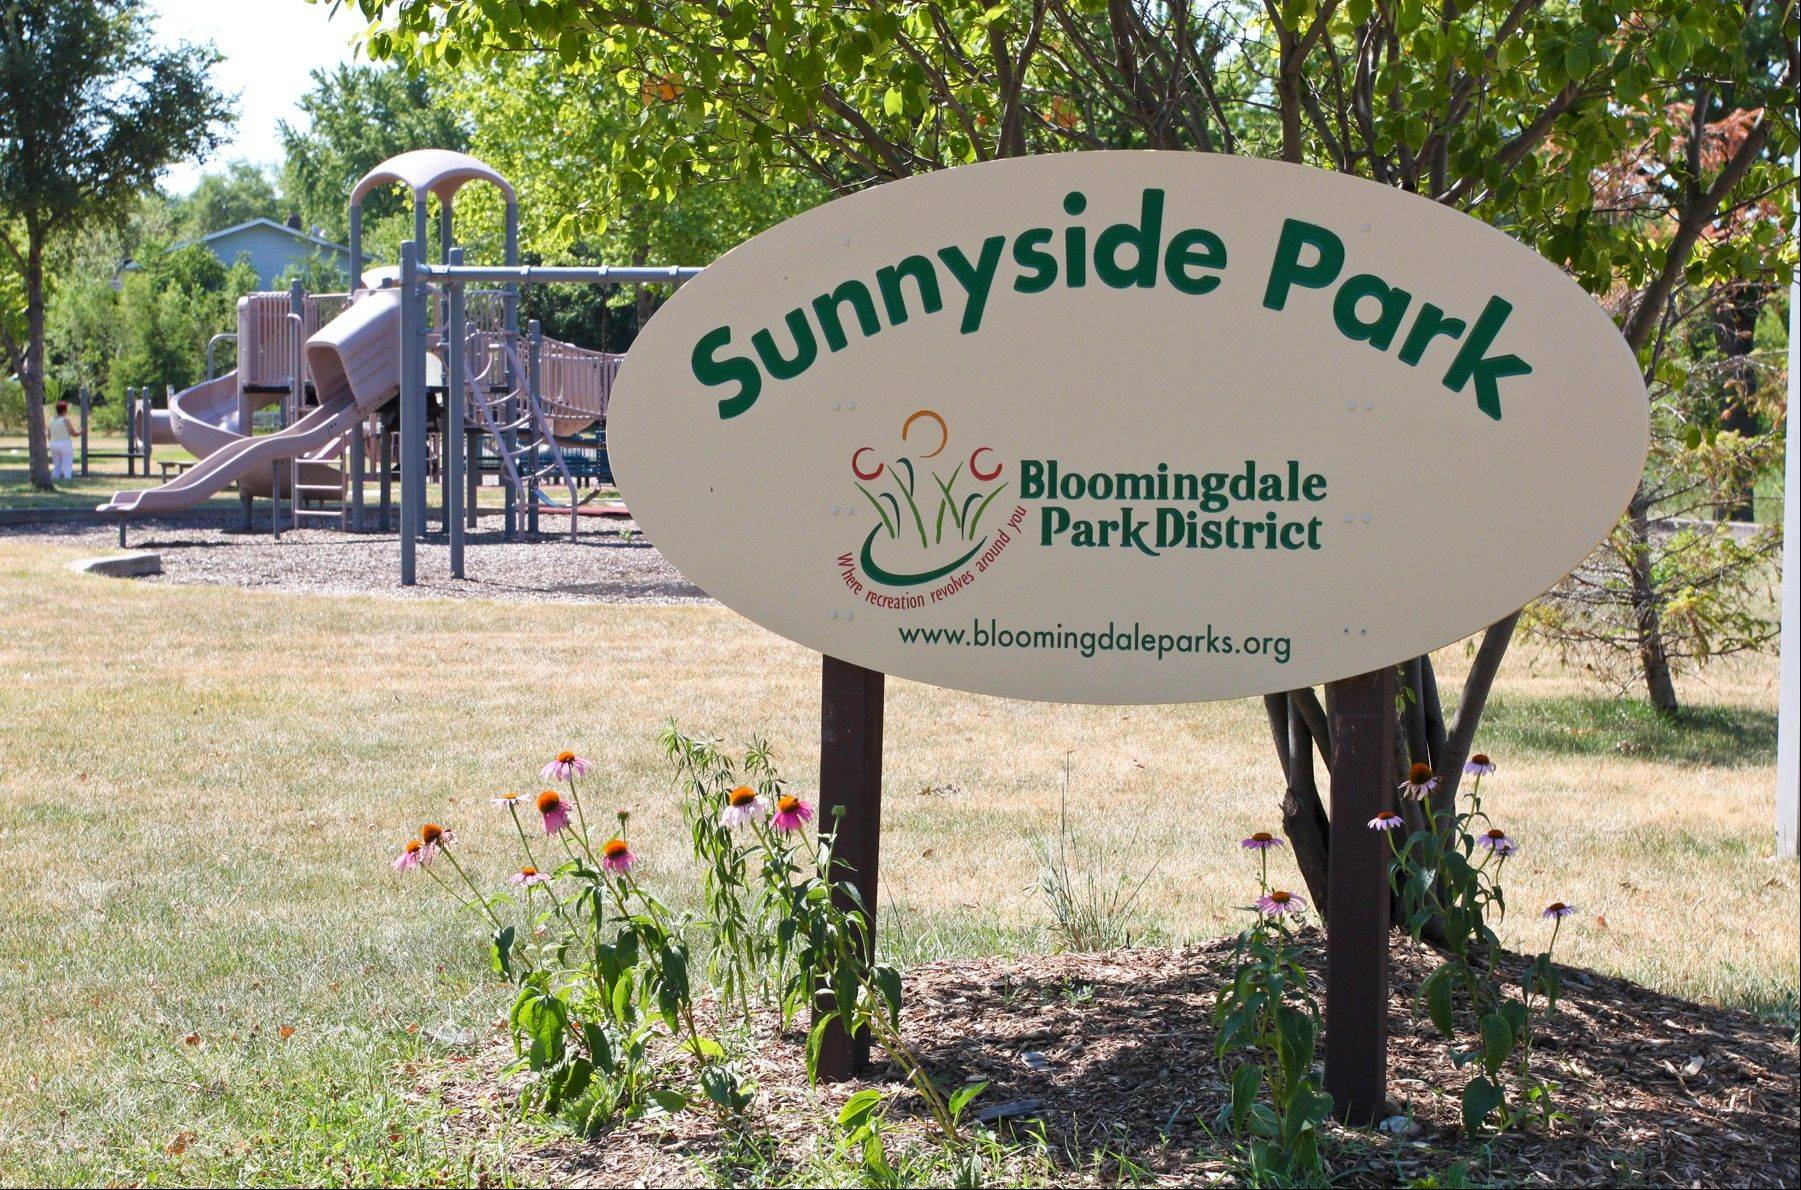 Bloomingdale Park District is planning to renovate the playground structure at Sunnyside Park.